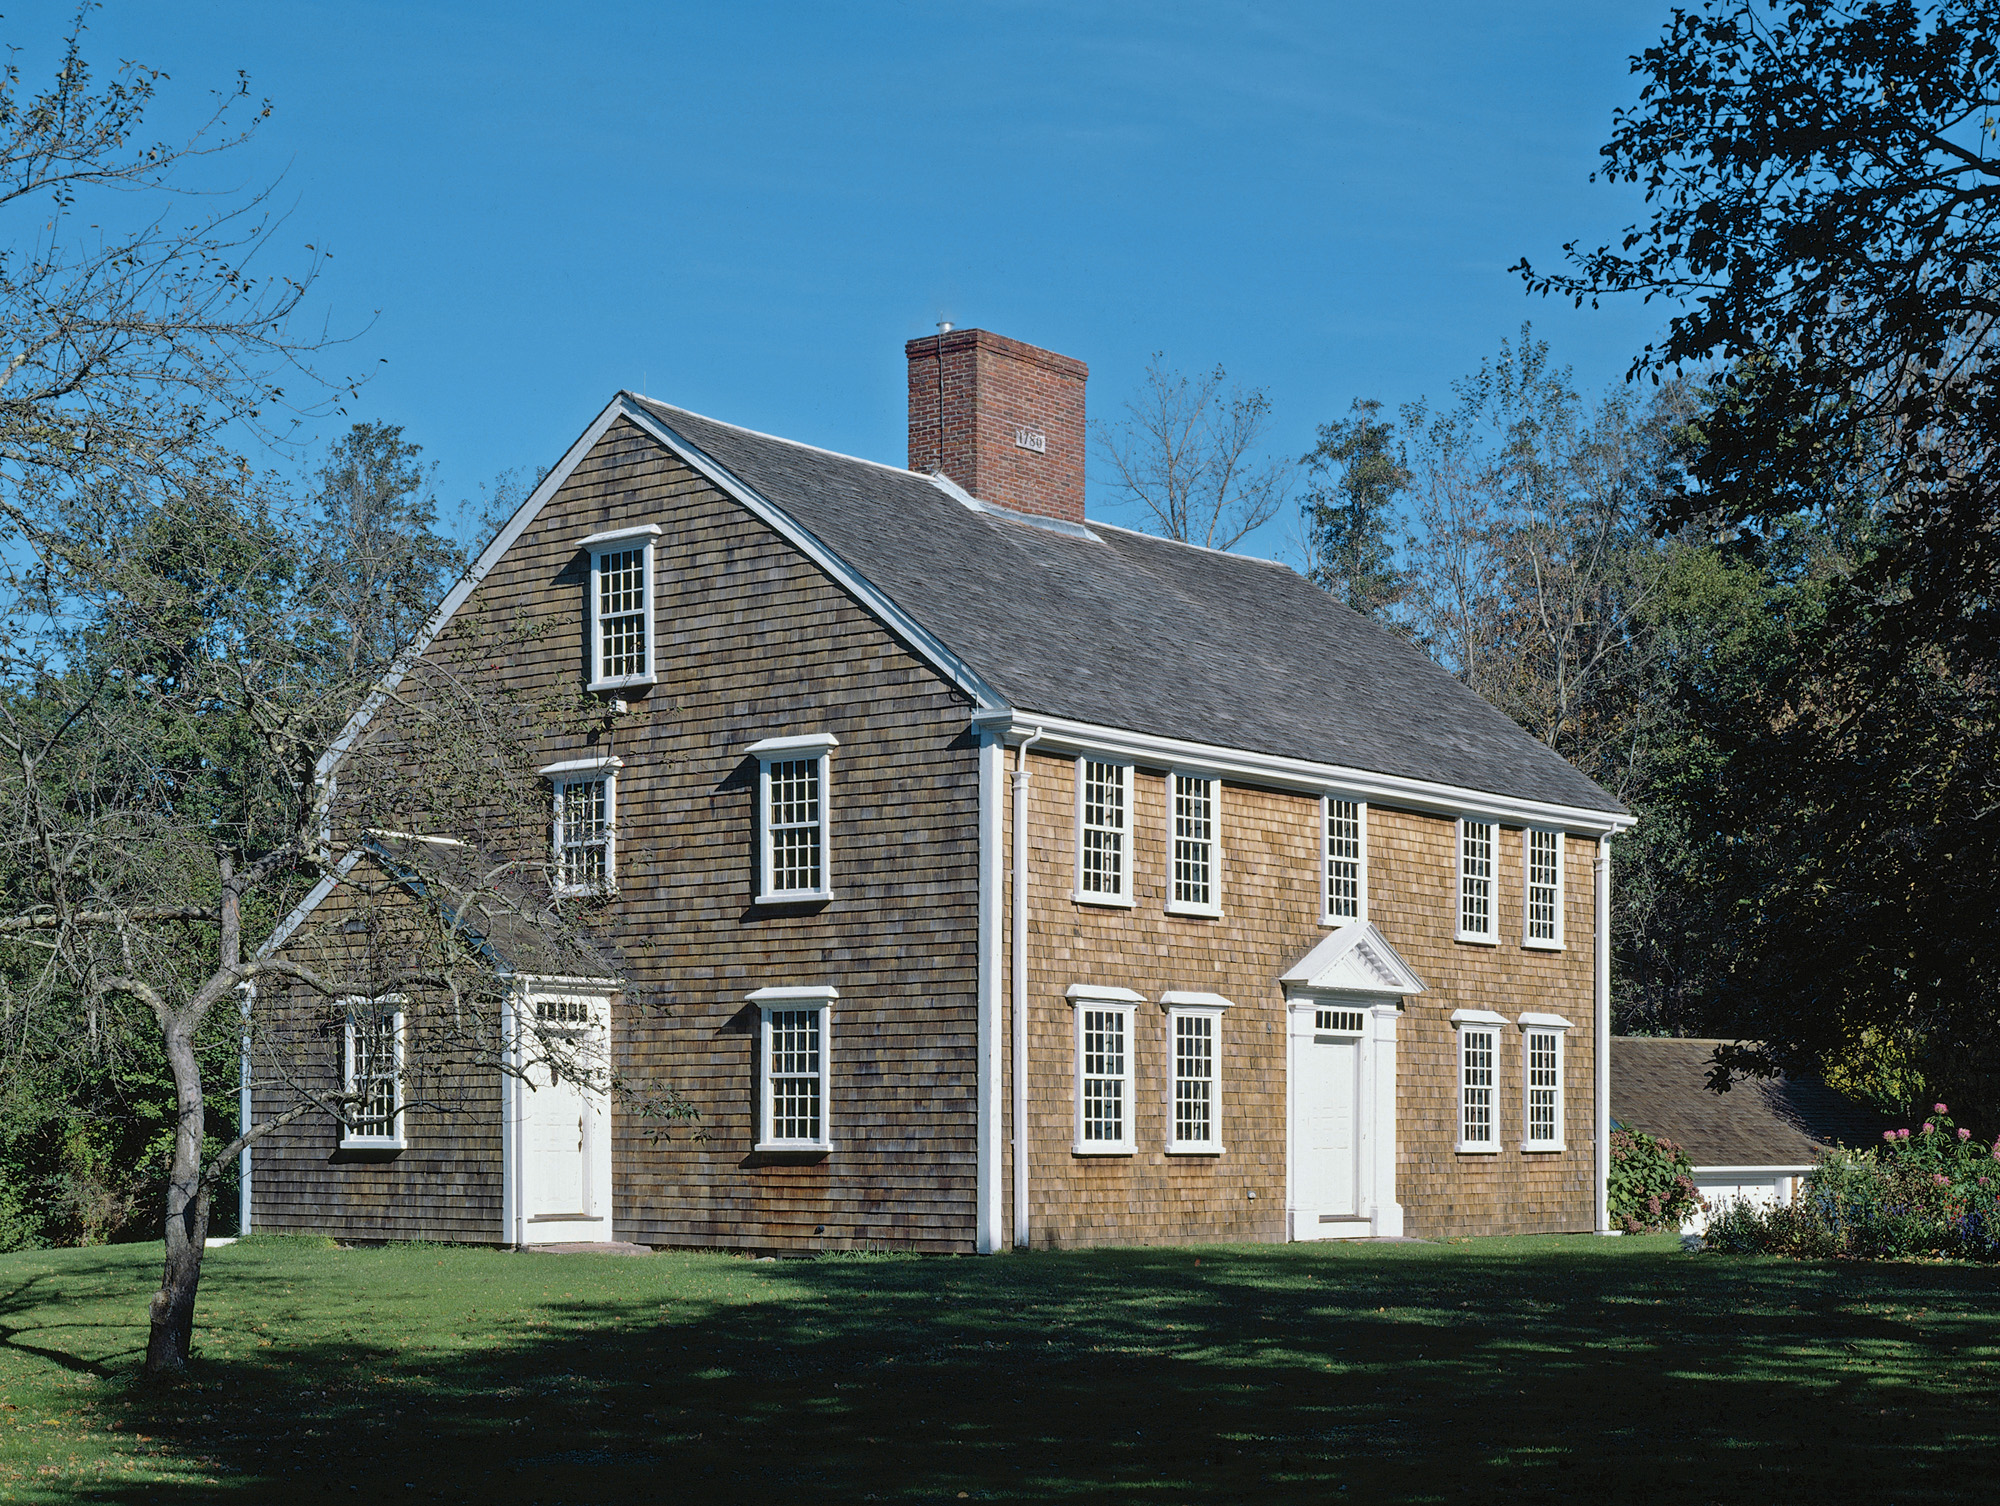 Grand for its time and place, the house was built in West Barnstable around 1780 by Crocker, a trader and land speculator.